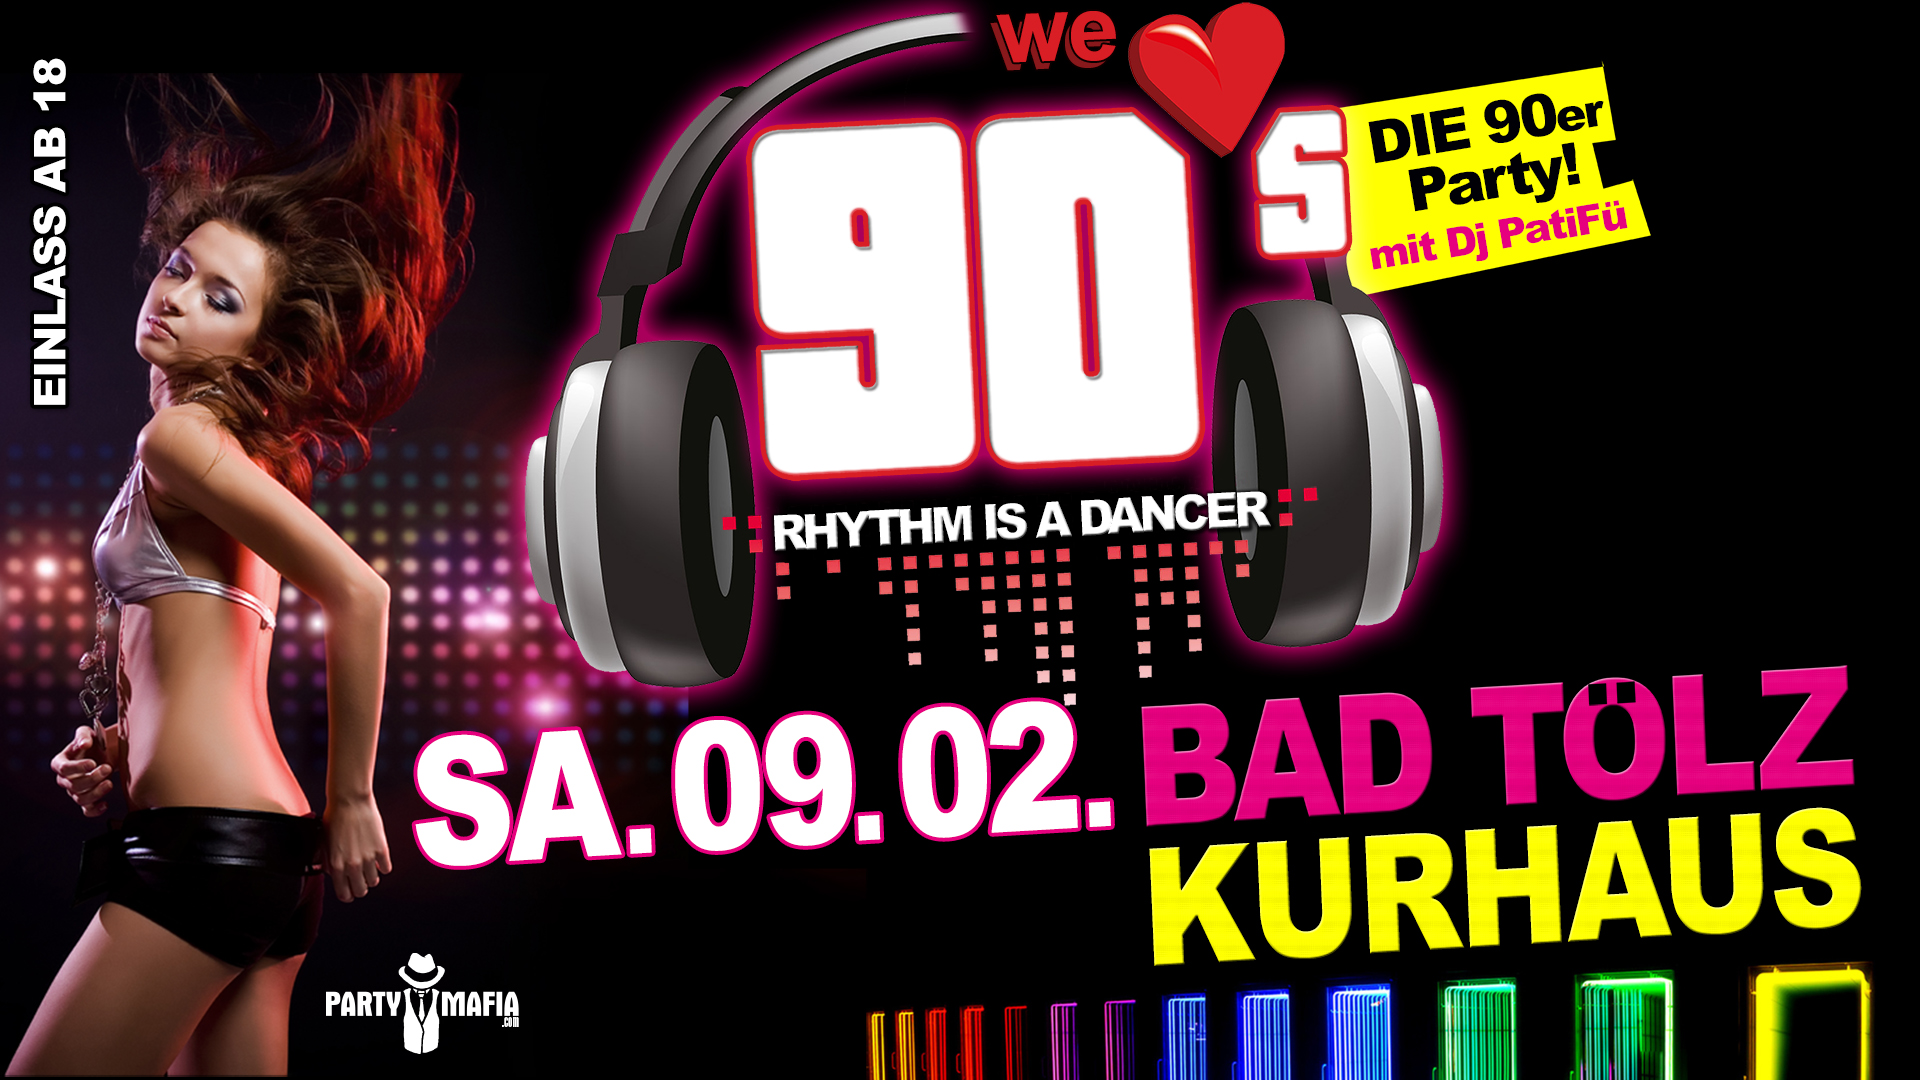 We love 90s - Kurhaus Bad Tölz